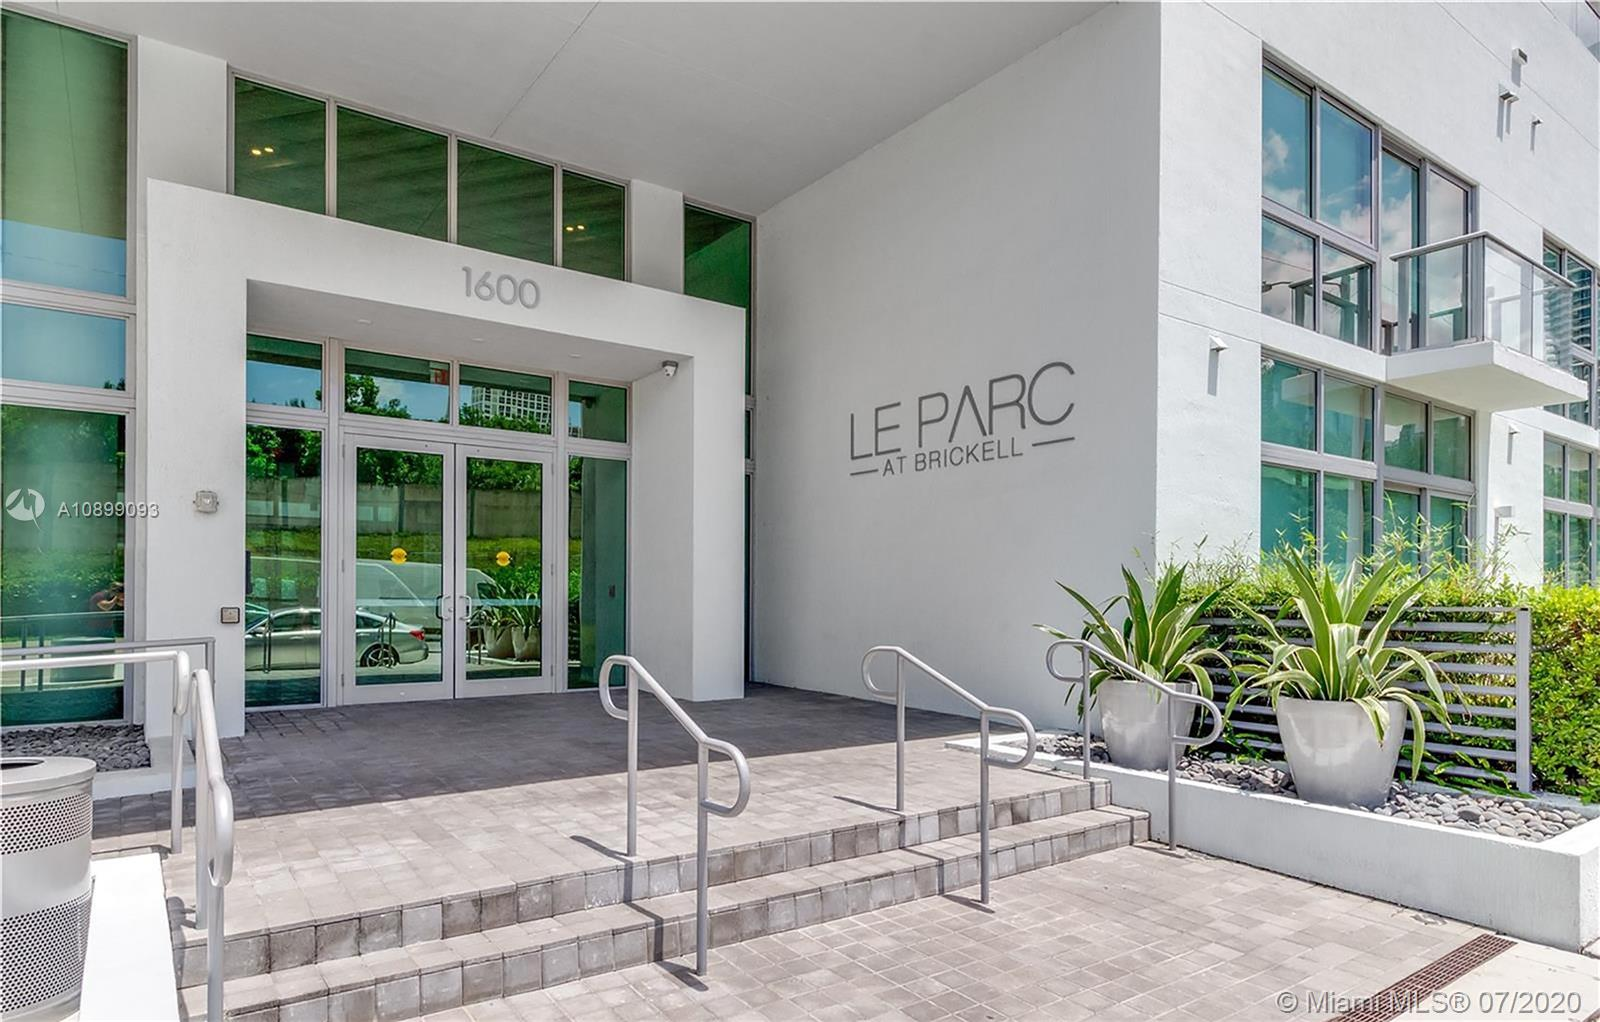 Le Parc At Brickell #407 - 1600 SW 1st Ave #407, Miami, FL 33129